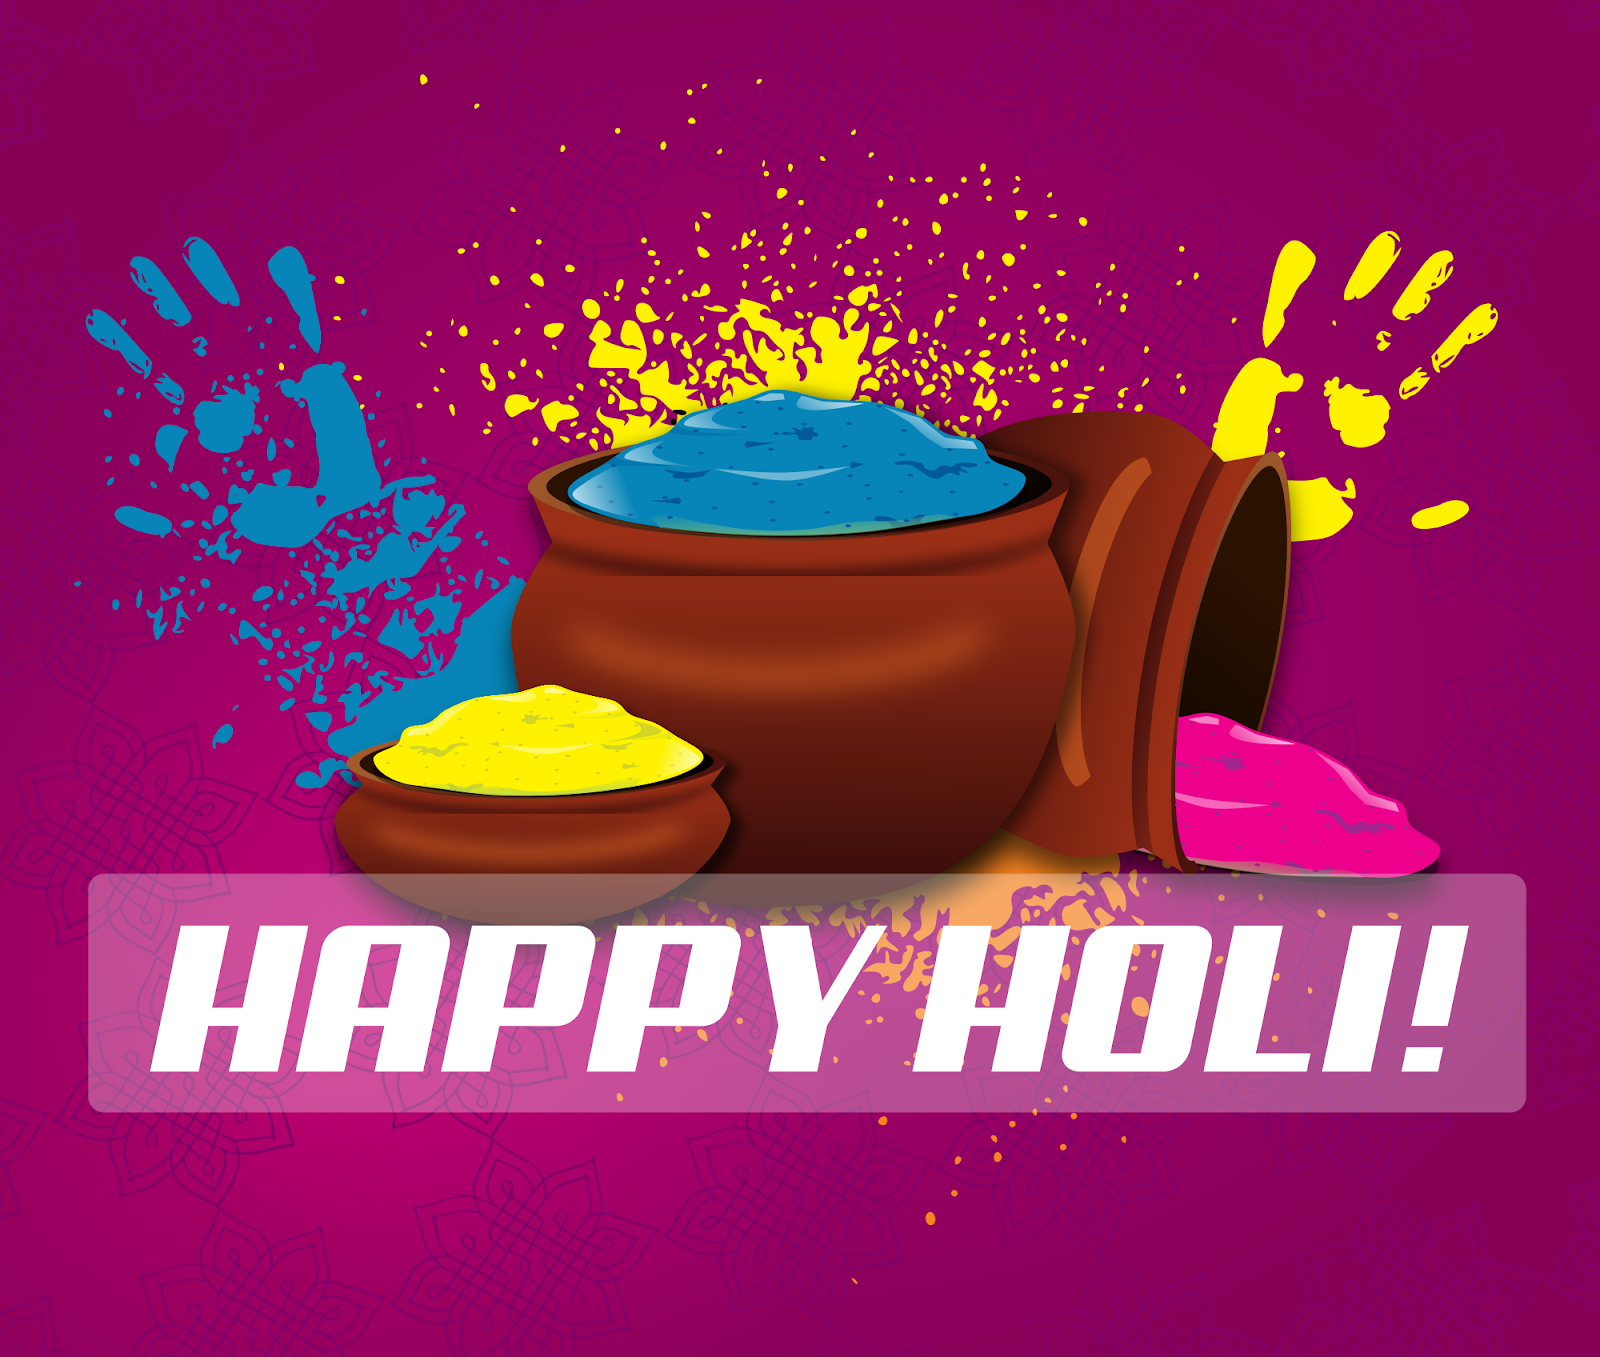 Happy Holi Images 2019 Happy Holi Greetings Holi Images Free